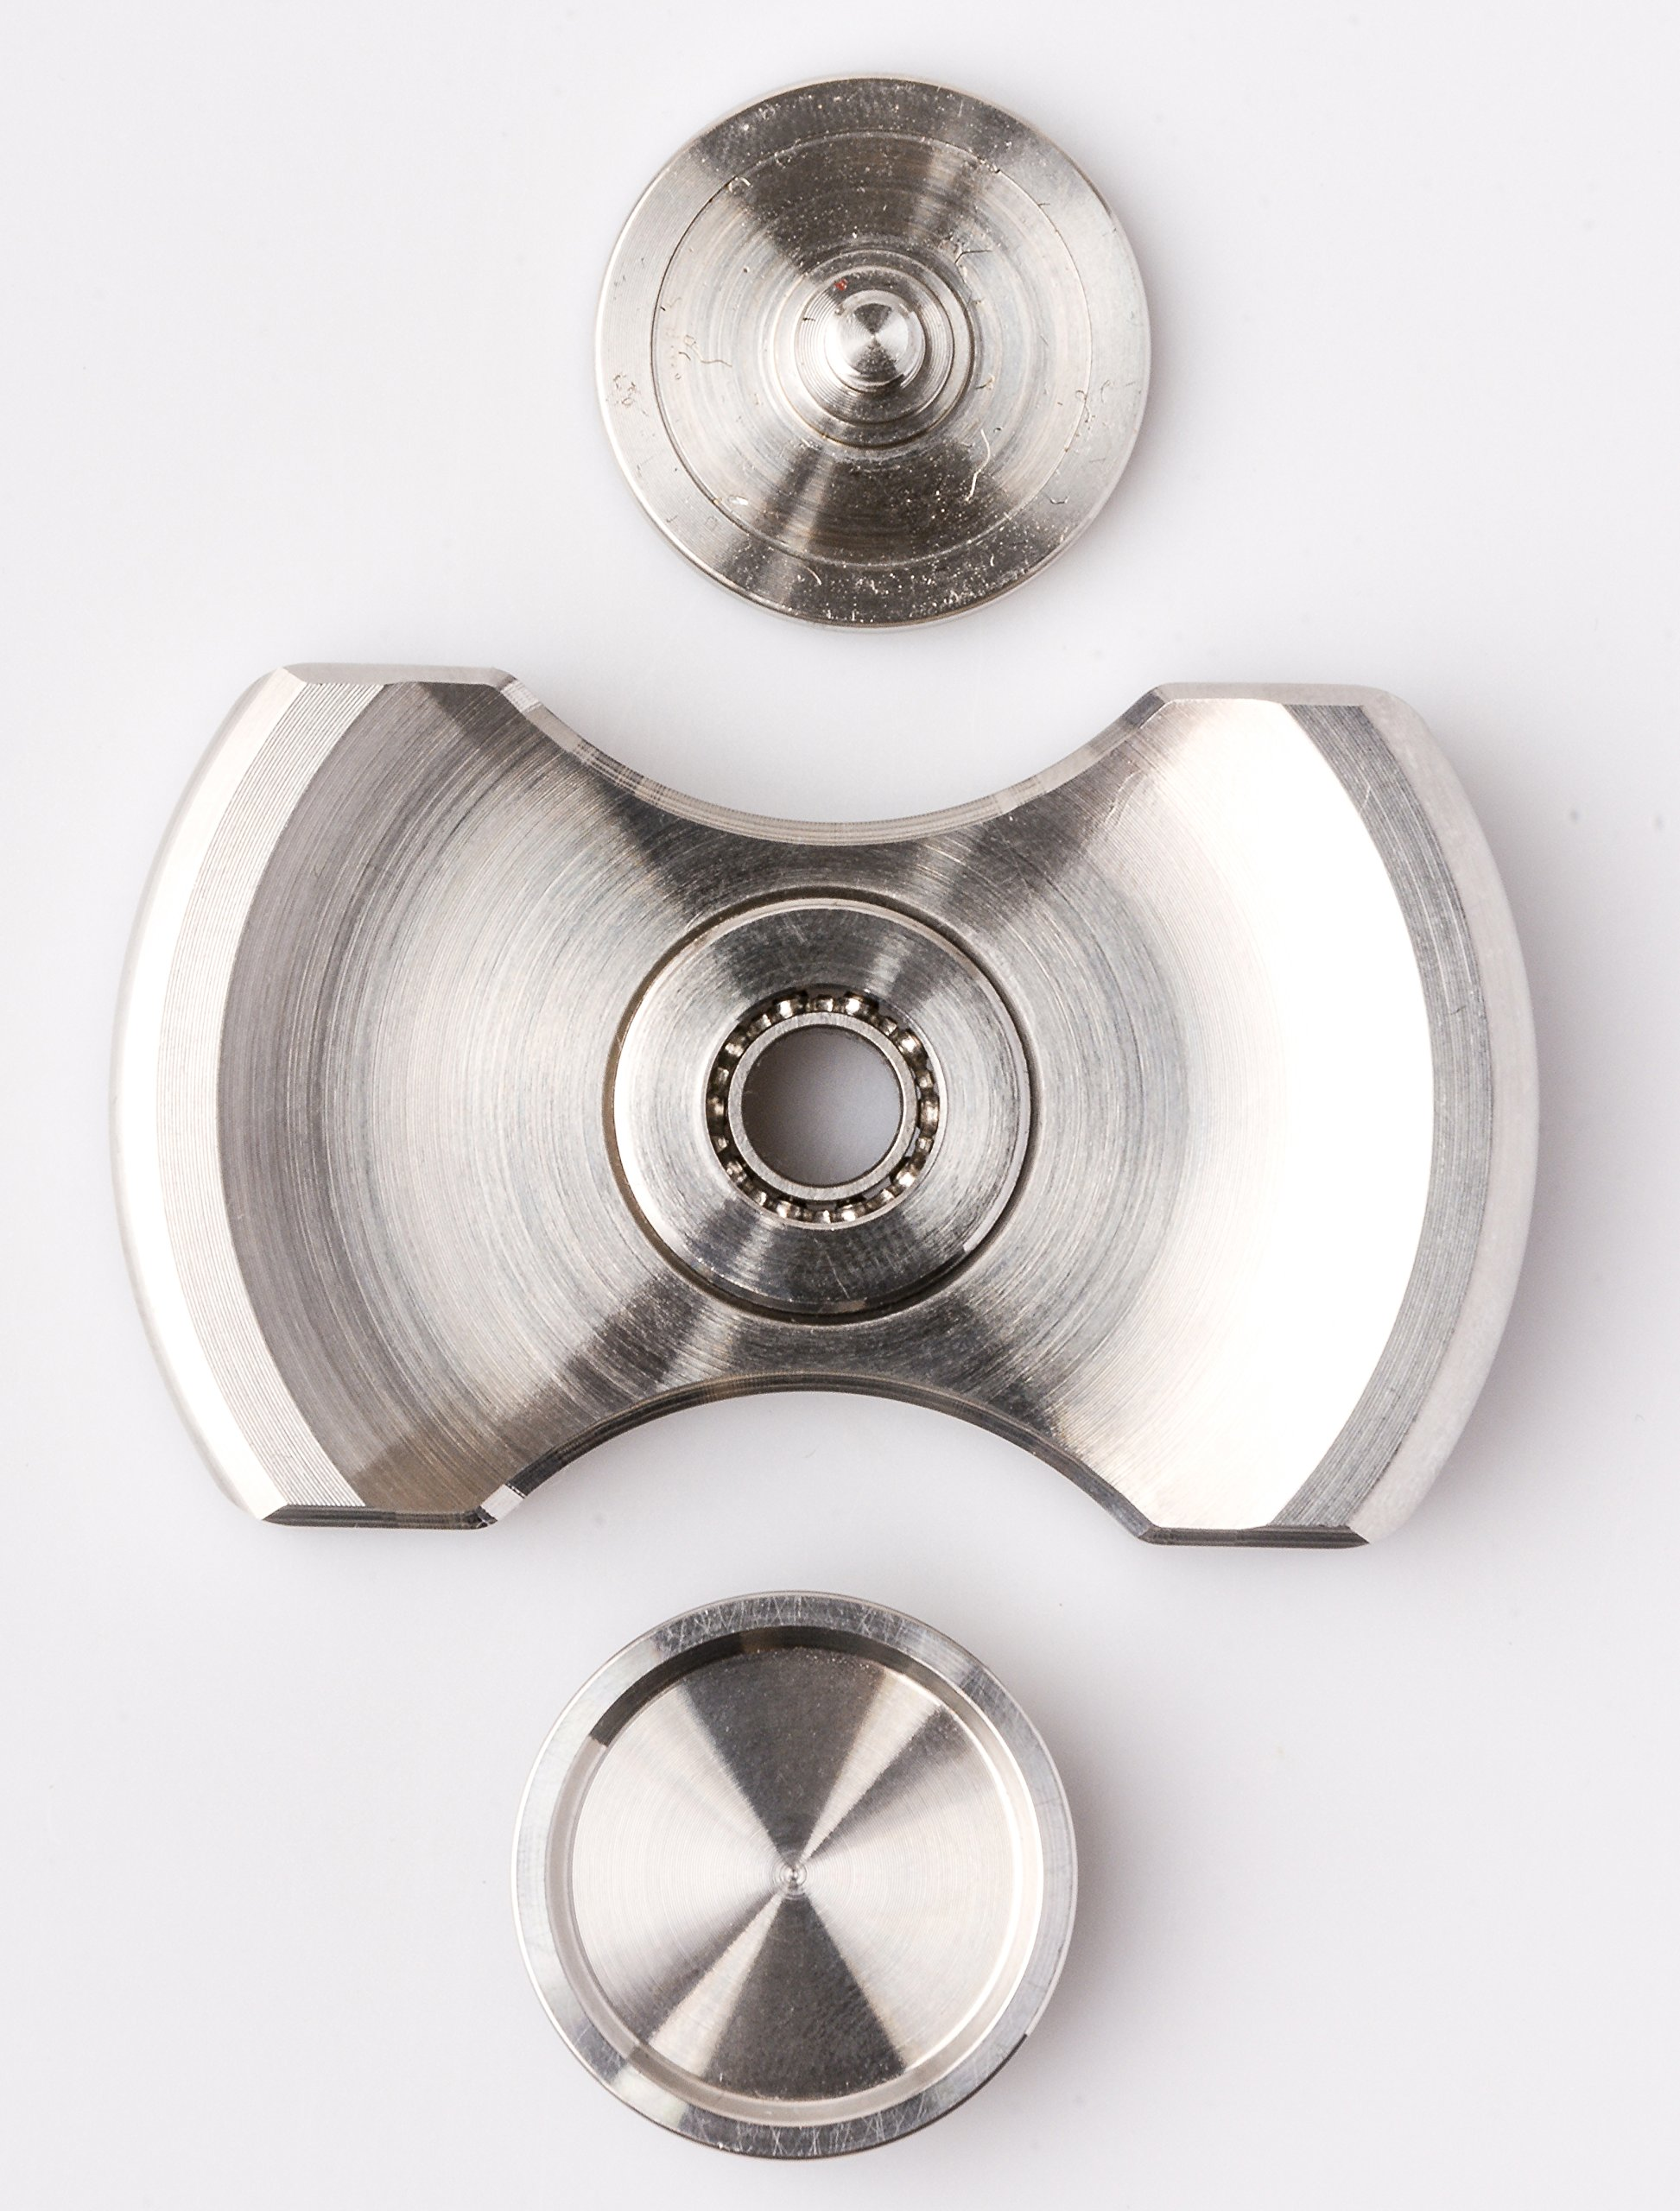 ILoveFidget Fidget Spinner, Best Stainless Steel Hand Spinner EDC Toy, R188 bearing spins up to 8 mins, relieve stress ADHD ADD Austism anxiety boredom, improve focus attention (Double Bar) by ILoveFidget (Image #4)